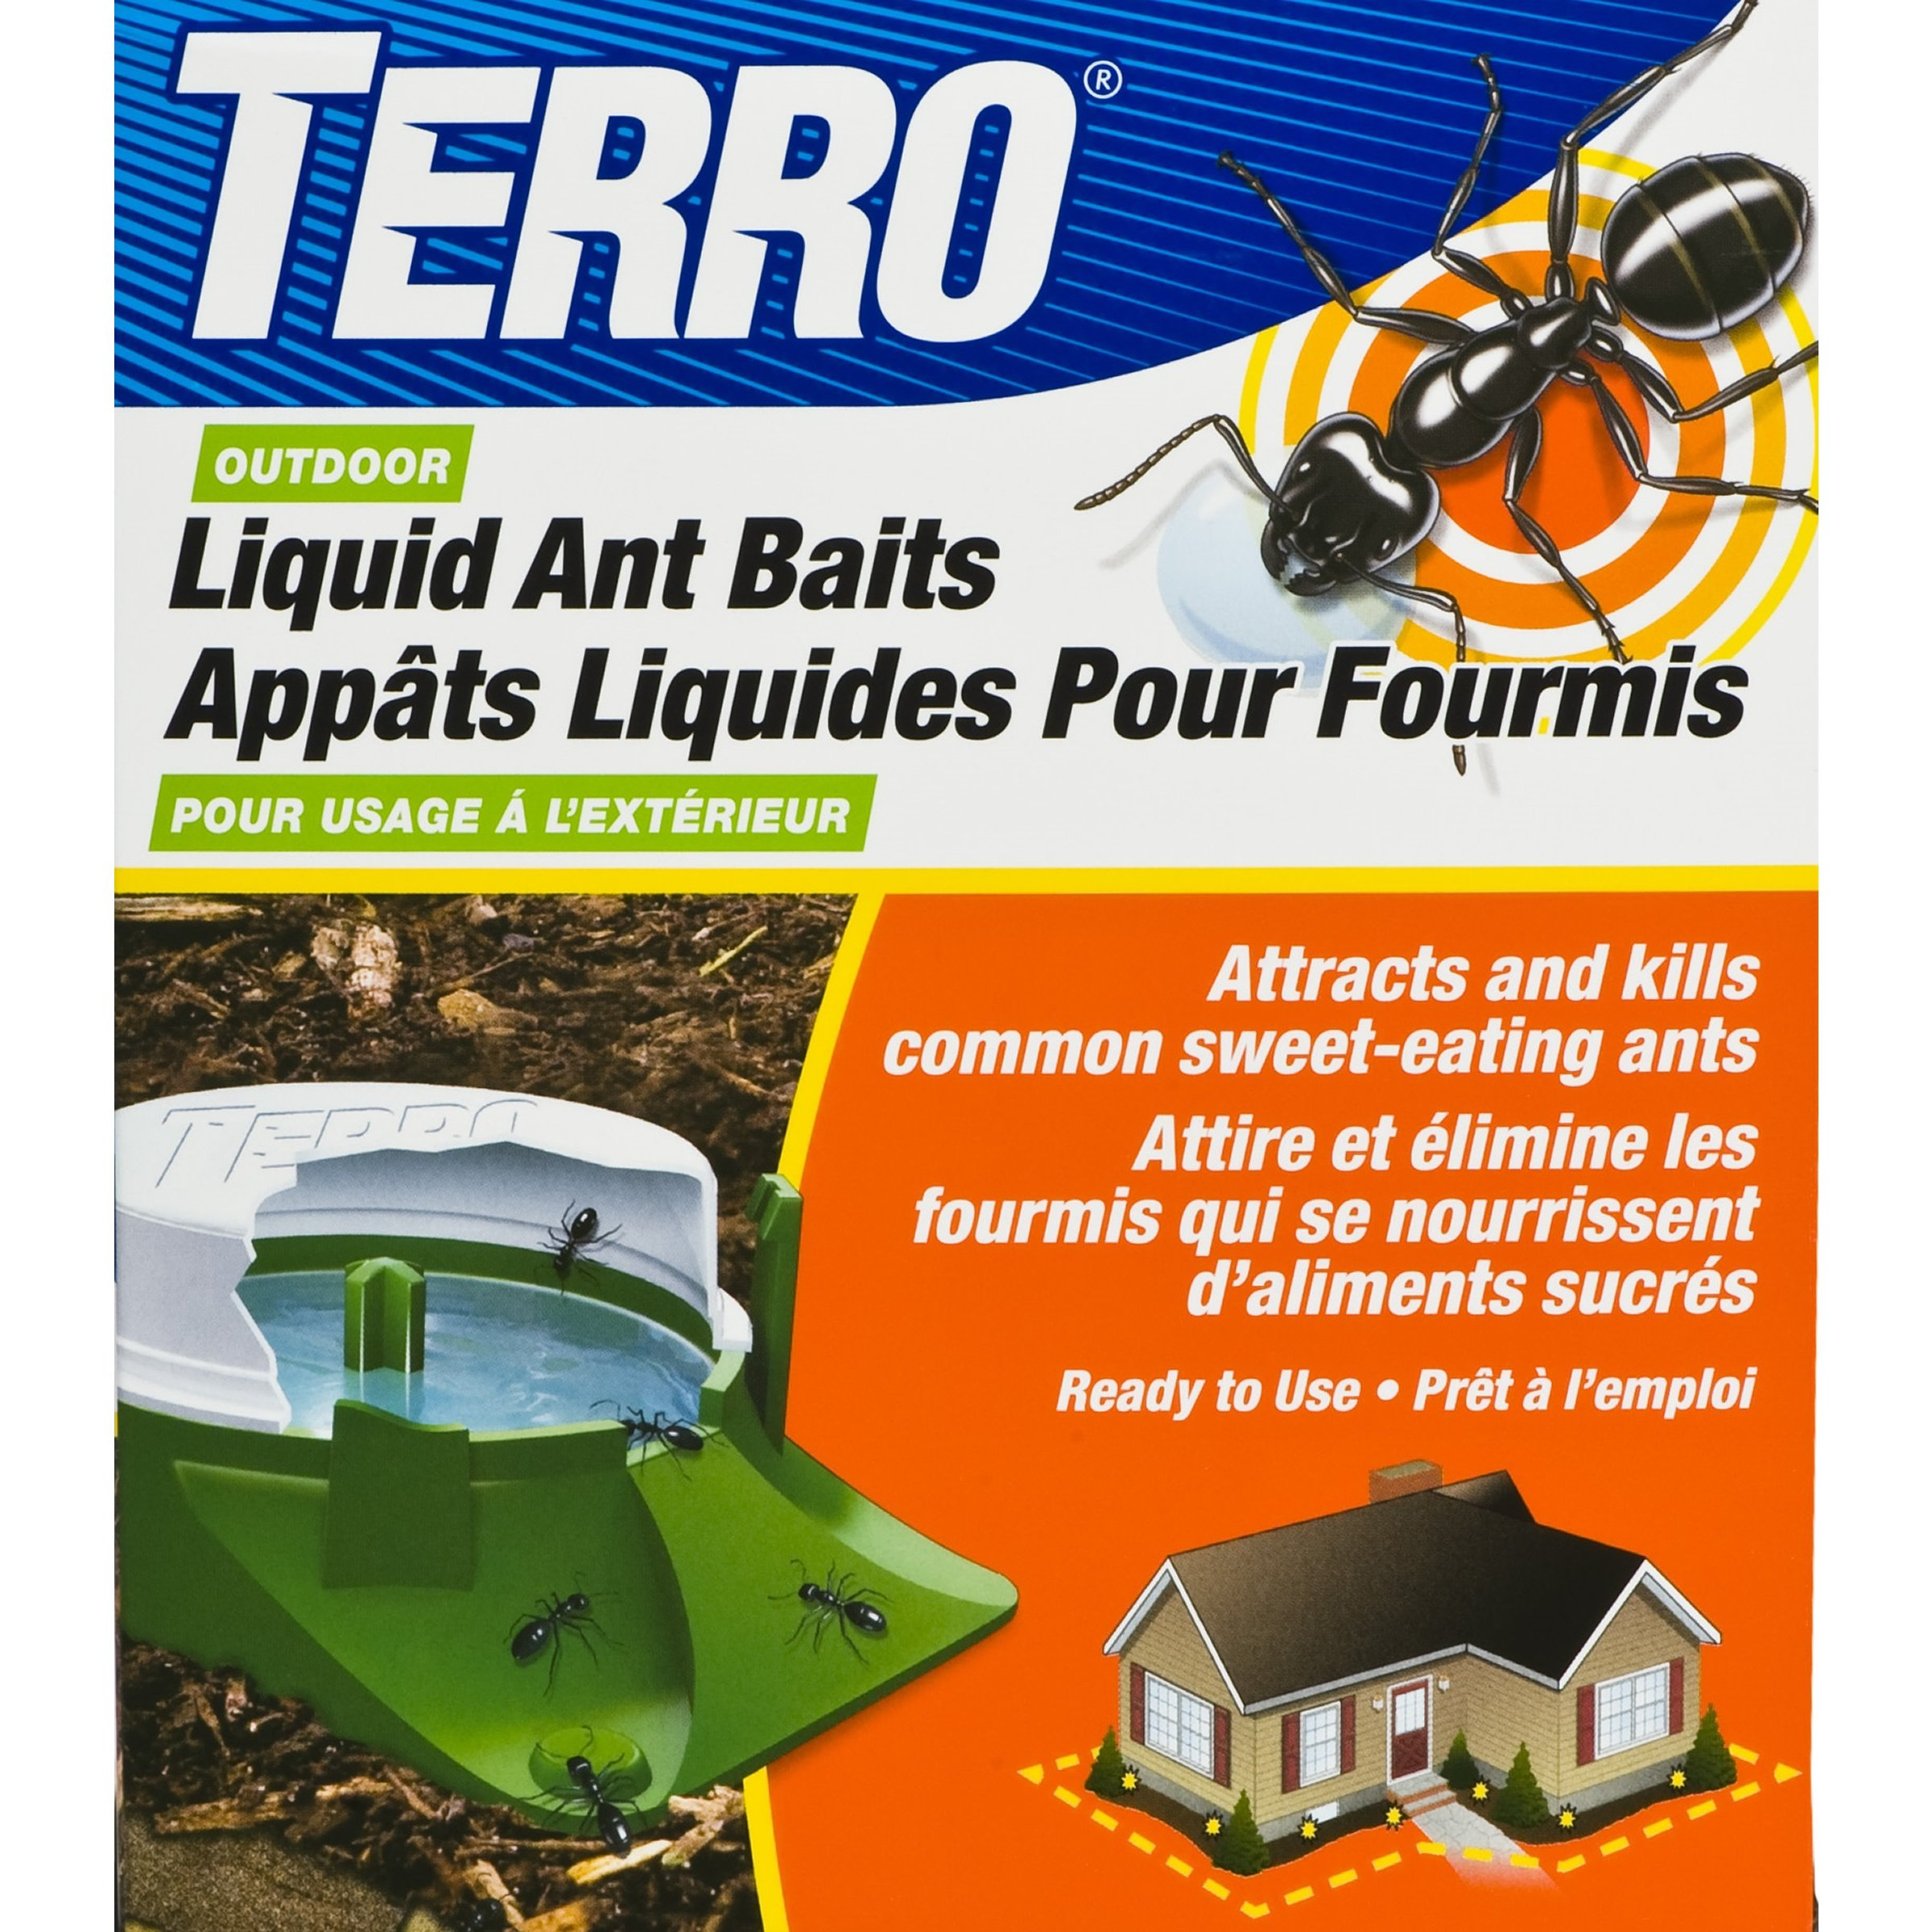 TERRO Outdoor Liquid Ant Baits T1806CAN product image